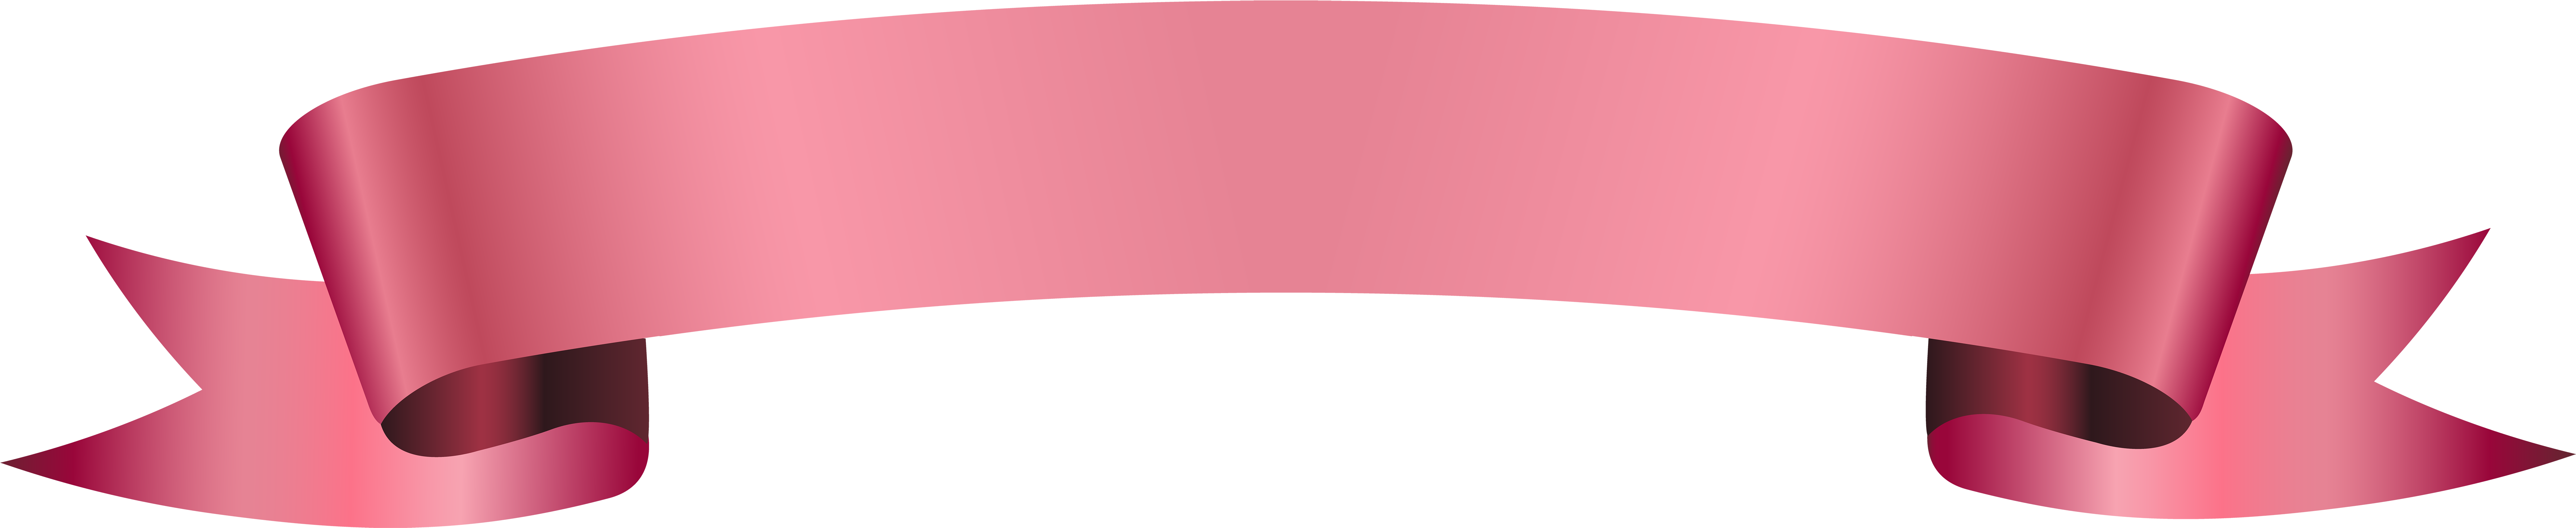 Pink ribbon banner png. Download image with no